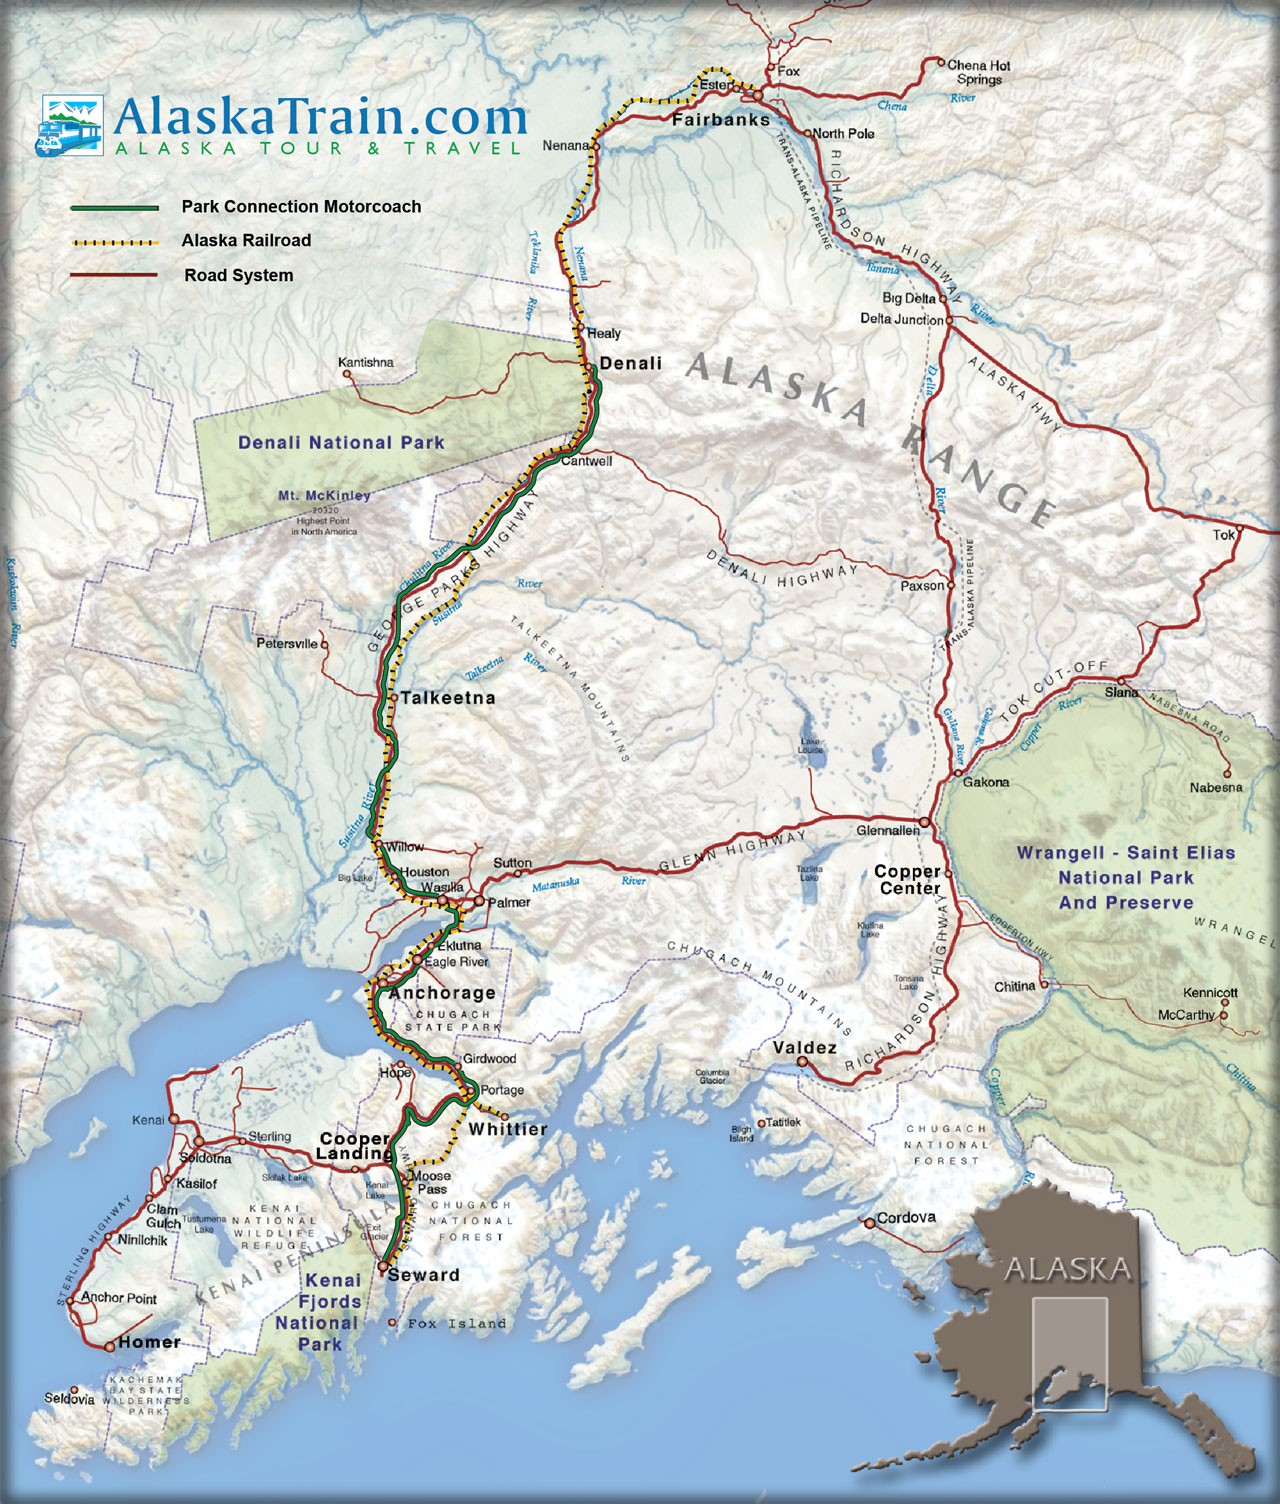 Alaska Railroad Map Alaska Train Maps – Alaska Travel Map